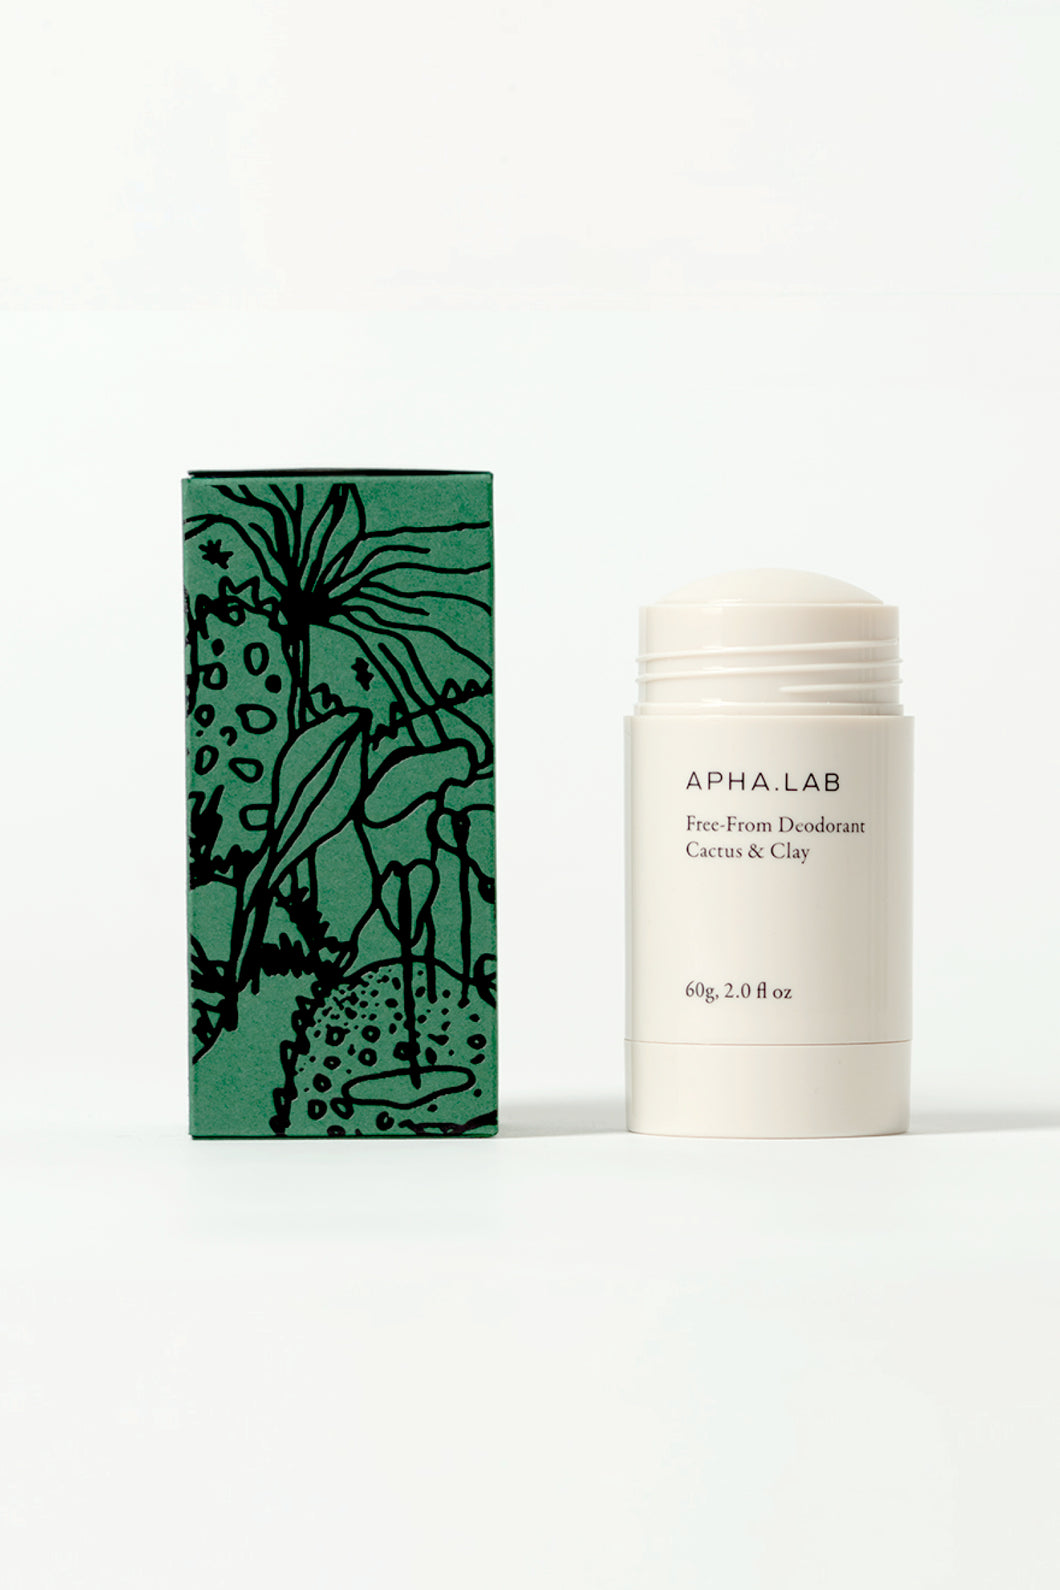 APHA.LAB Cactus & Clay Free-From Deodorant